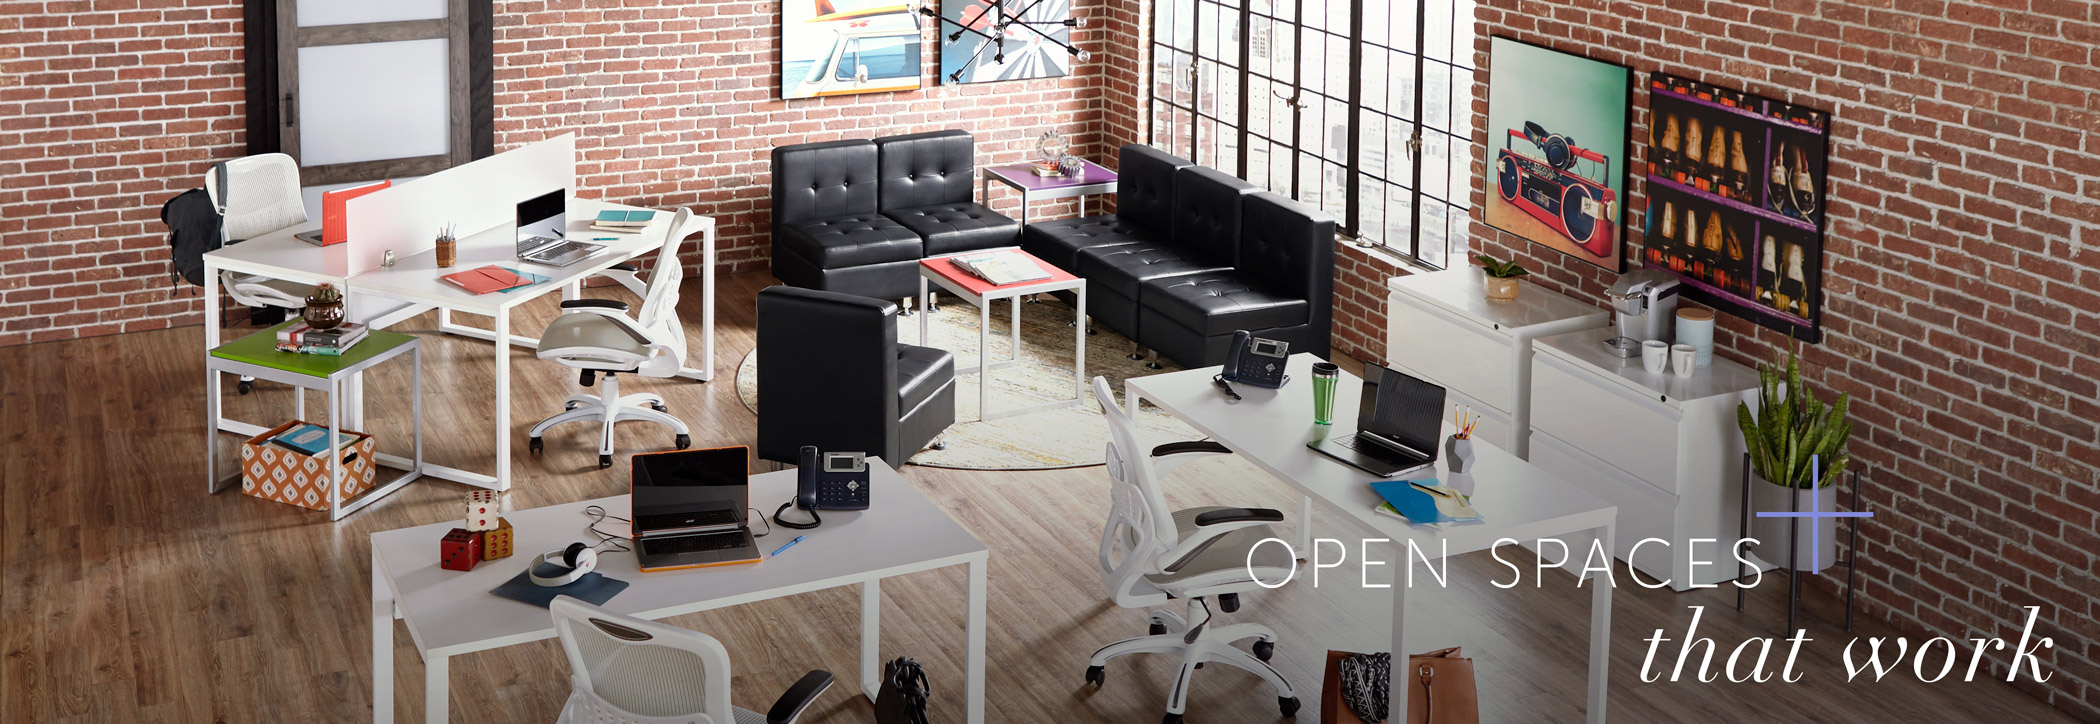 Open office space with rented furniture with words 'open spaces that work'